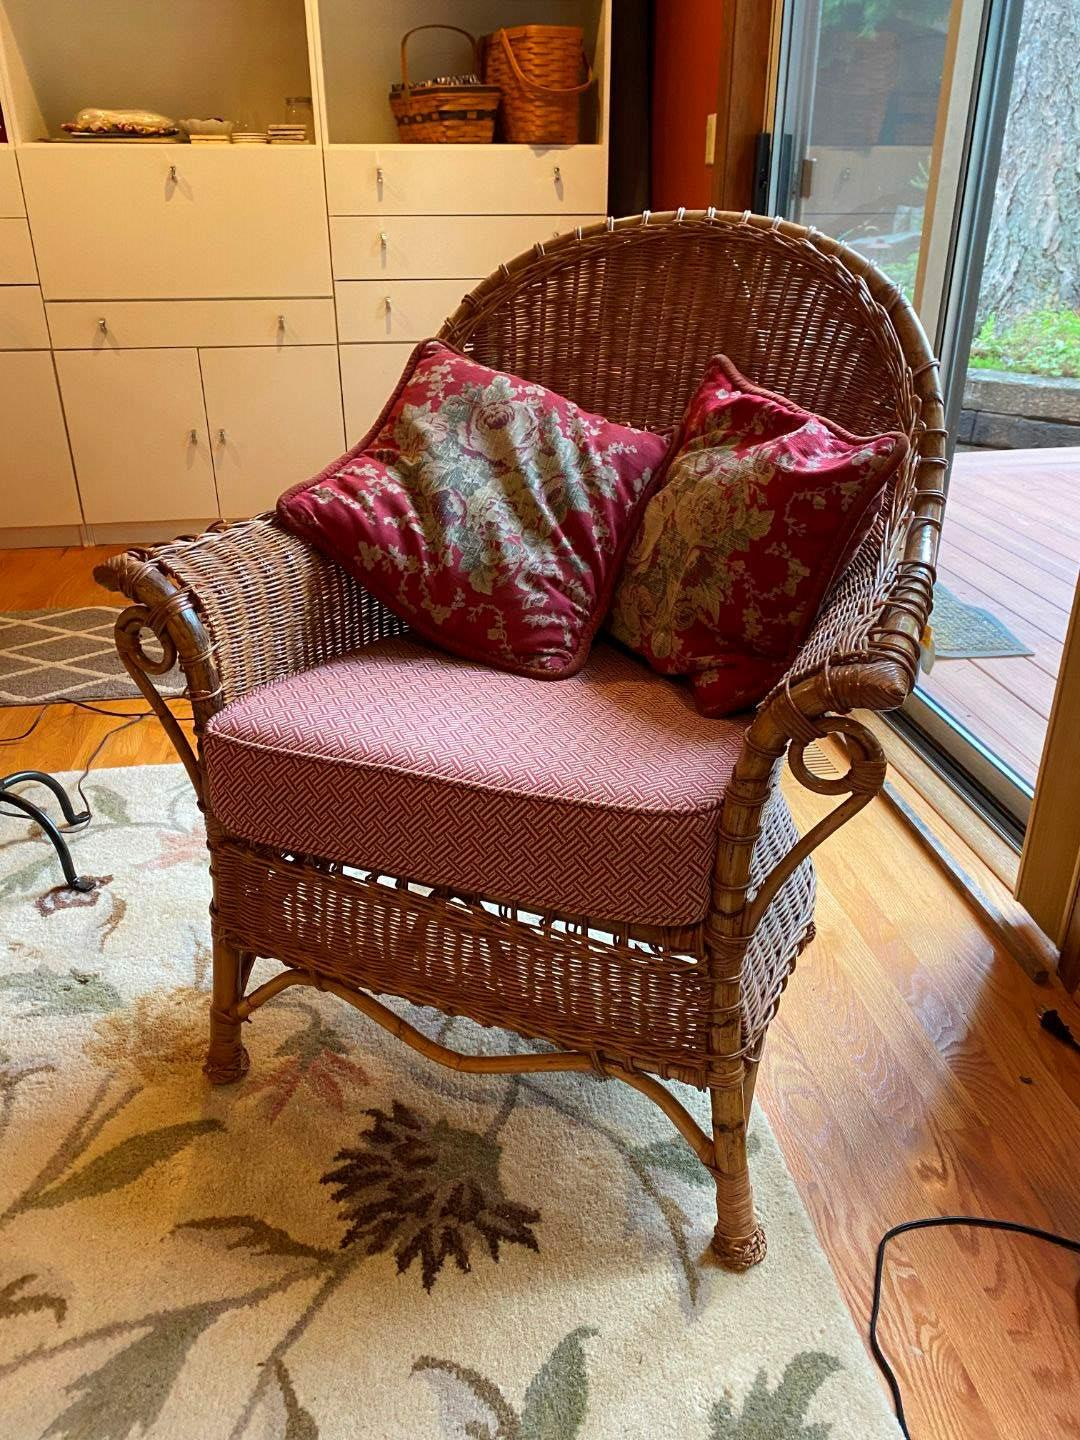 Lot # 81 - Durban Rattan & Wicker Armchair from Pier 1 Imports (main image)